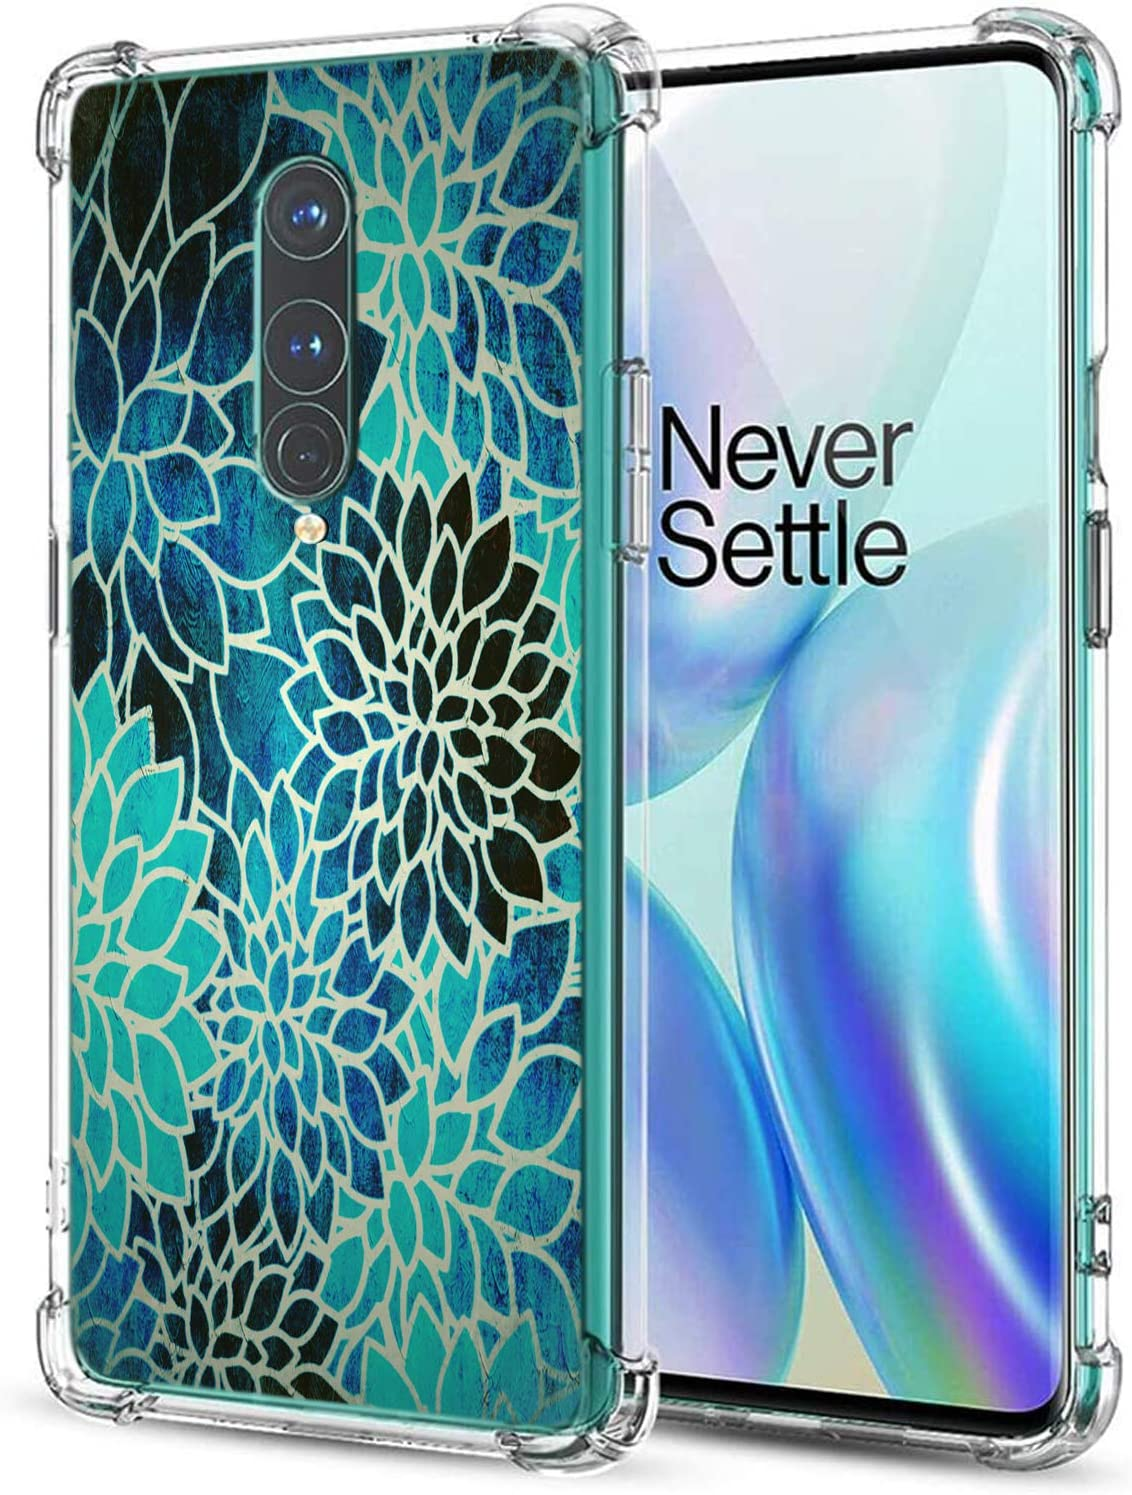 Lotus Case for OnePlus 8,Gifun Hard PC+TPU Bumper Clear Protective Case Compatible with Oneplus 8 5G Phone(NOT FIT with Verizon Version) - Vintage Blue Lotus